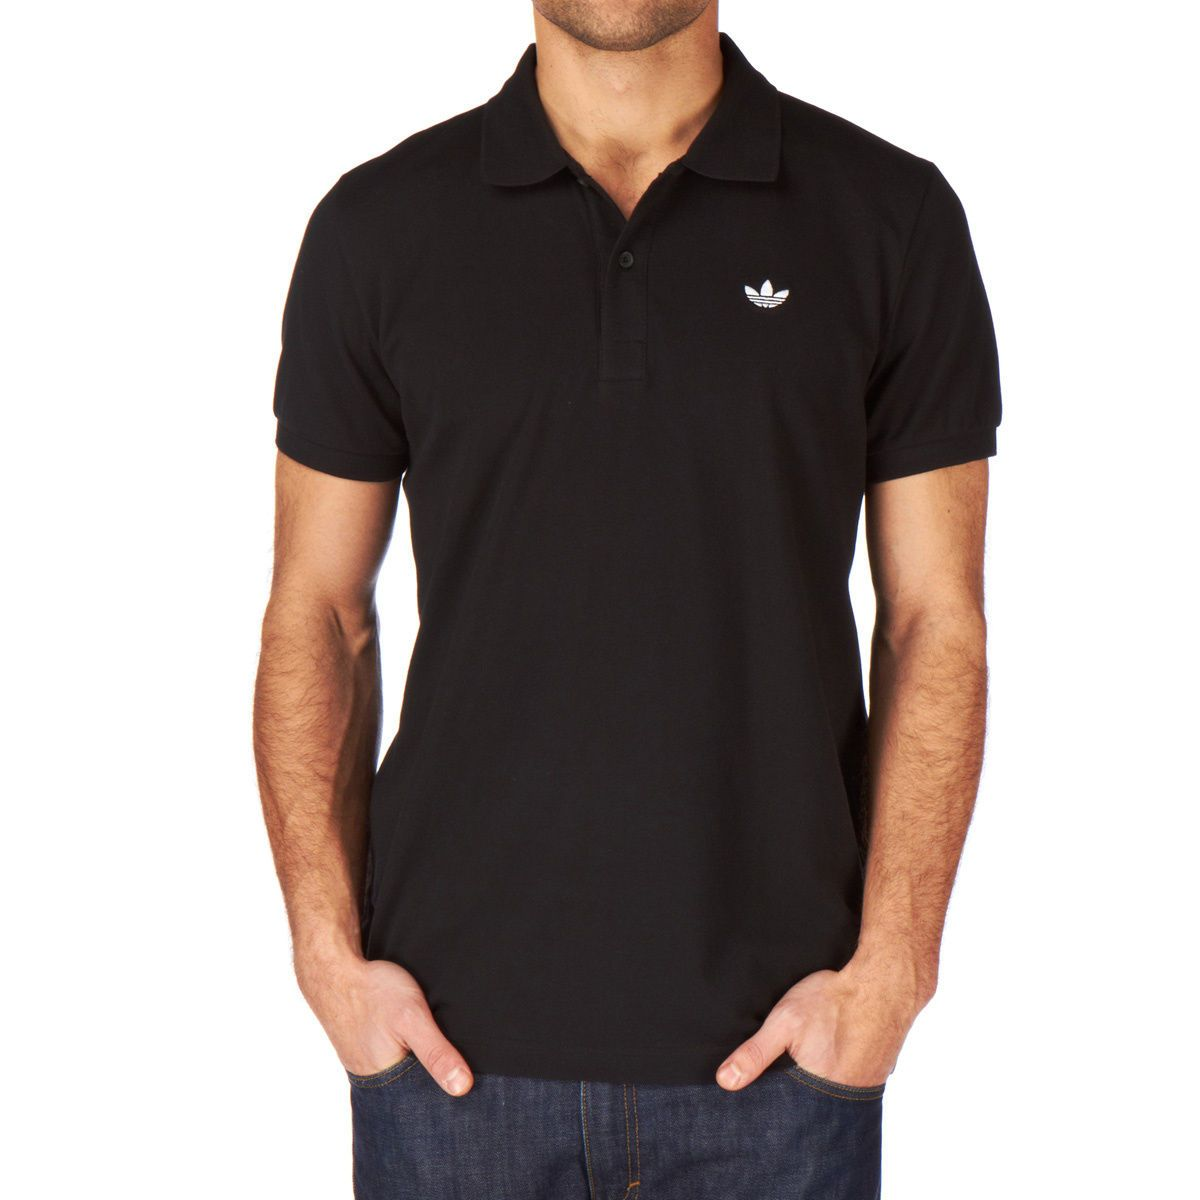 Branded golf shirt adidas in black color polo shirts for Black golf polo shirt